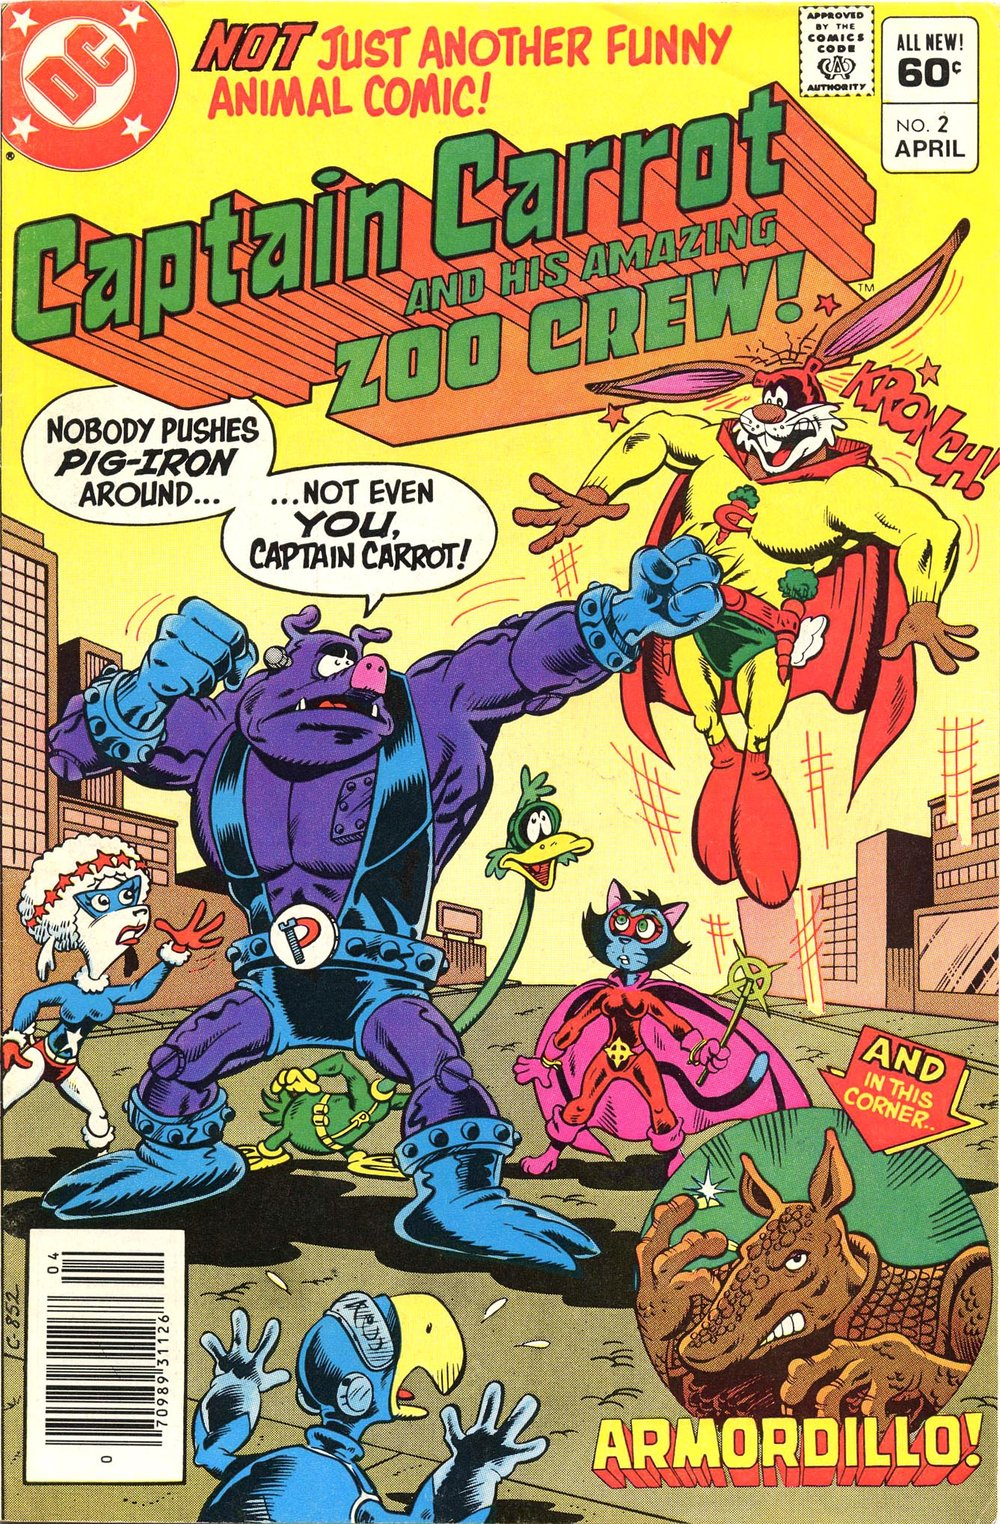 Captain Carrot and his Amazing Zoo Crew (1982) #2, cover penciled by Scott Shaw & inked by Bob Smith.